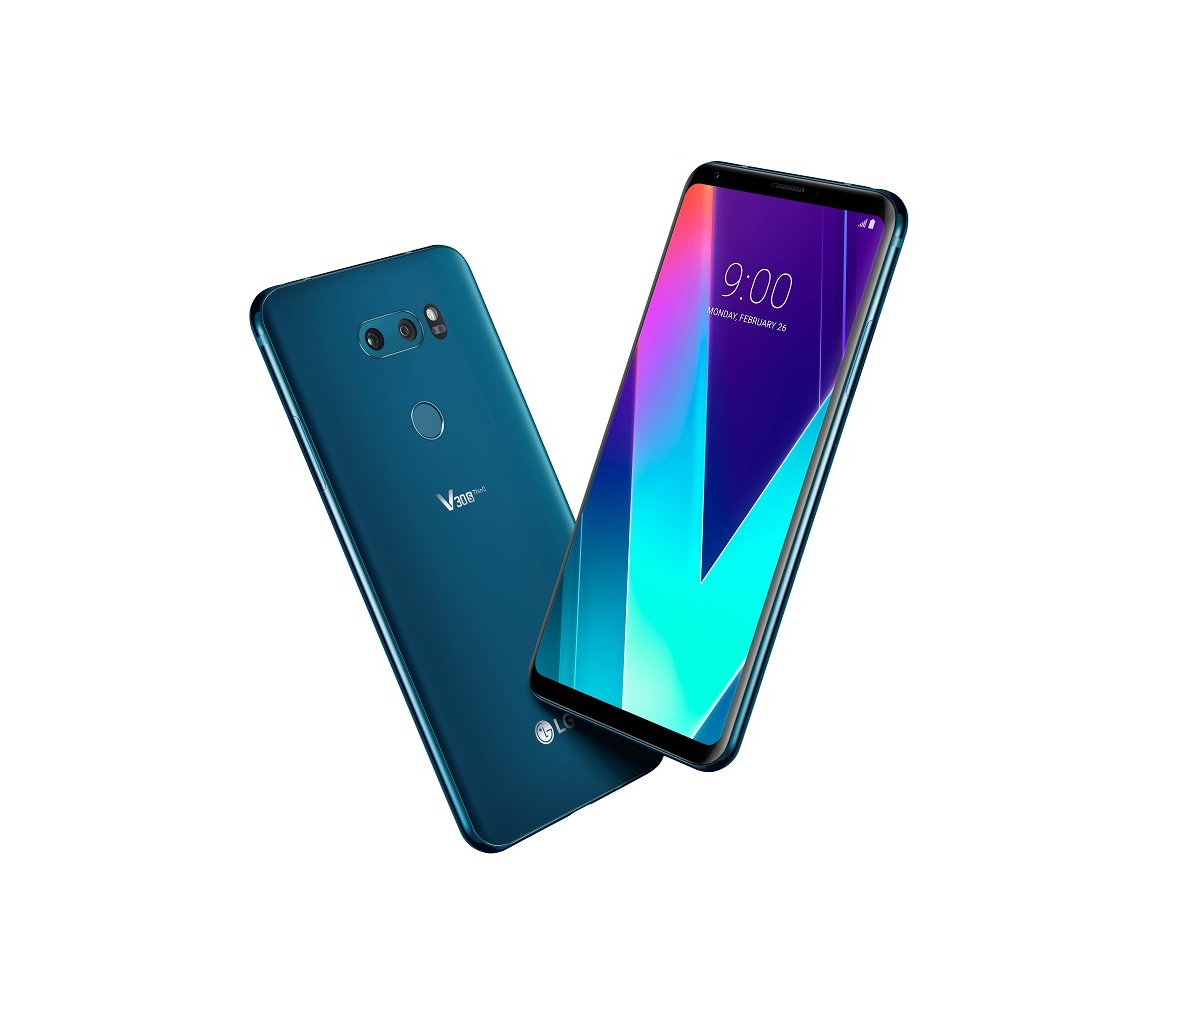 LG V30s ThinQ y LG V30s ThinQ+ se unen al club de flagships que superan los US$1000 de precio